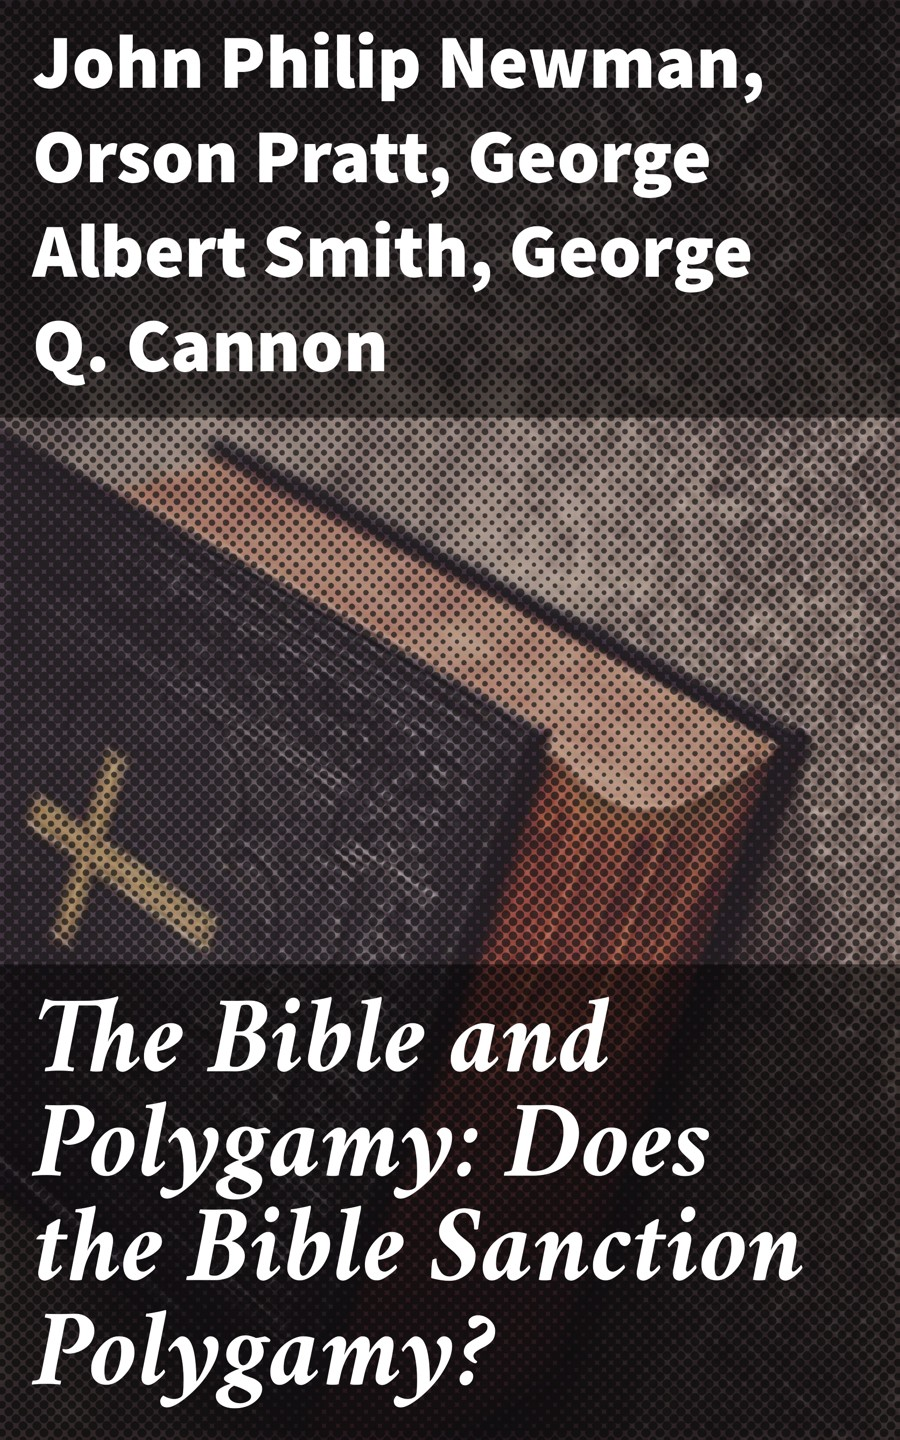 Orson Pratt The Bible and Polygamy: Does the Bible Sanction Polygamy? ngema nqobizwe mvelo regulation of polygamy a south african perspective